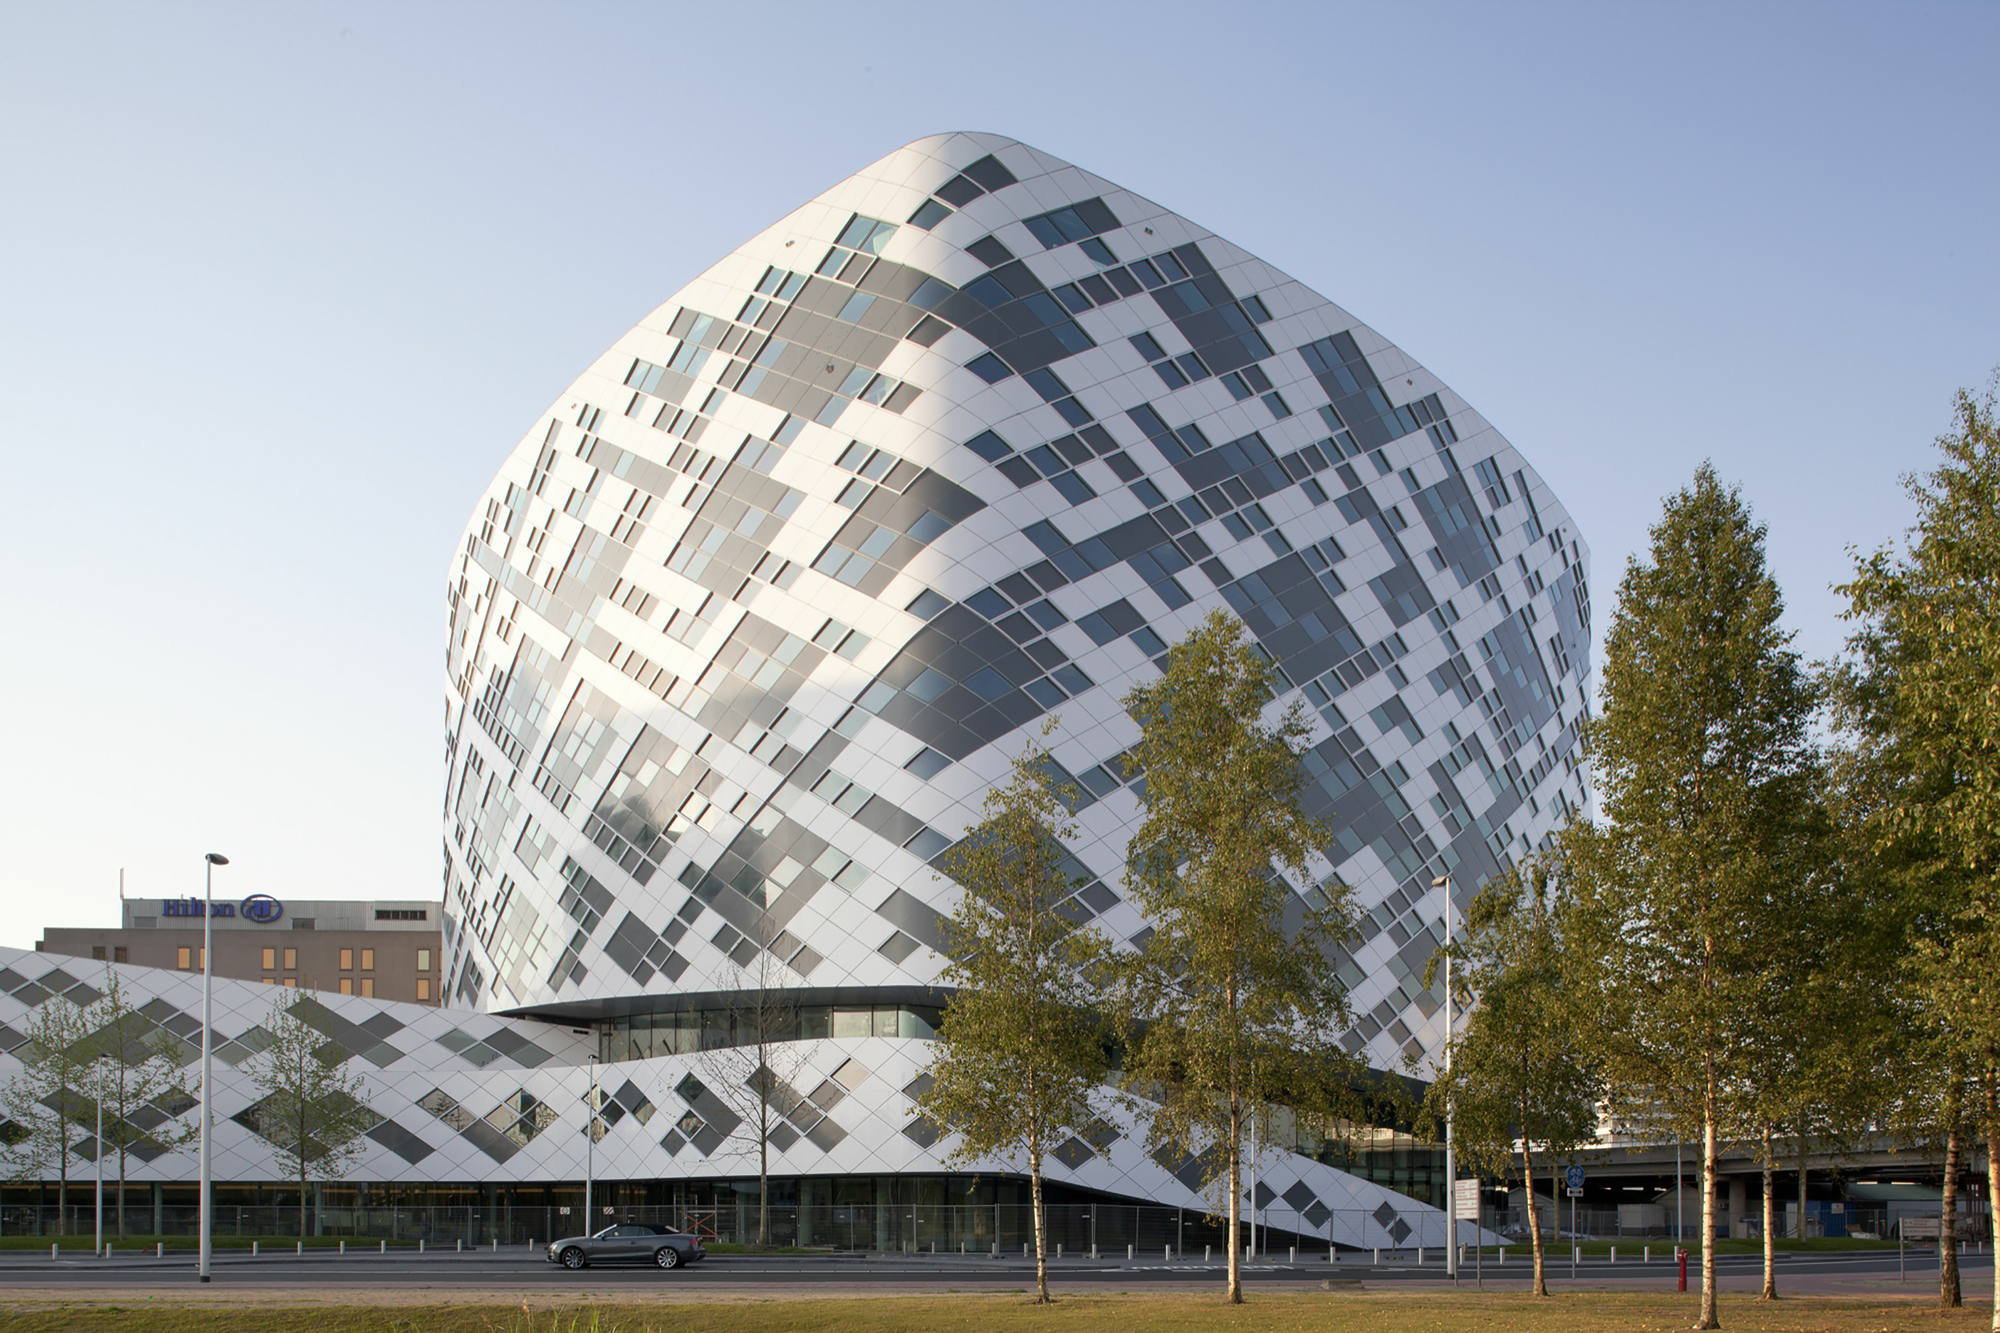 Gallery of hilton amsterdam airport schiphol mecanoo 2 for Hotel amsterdam cube